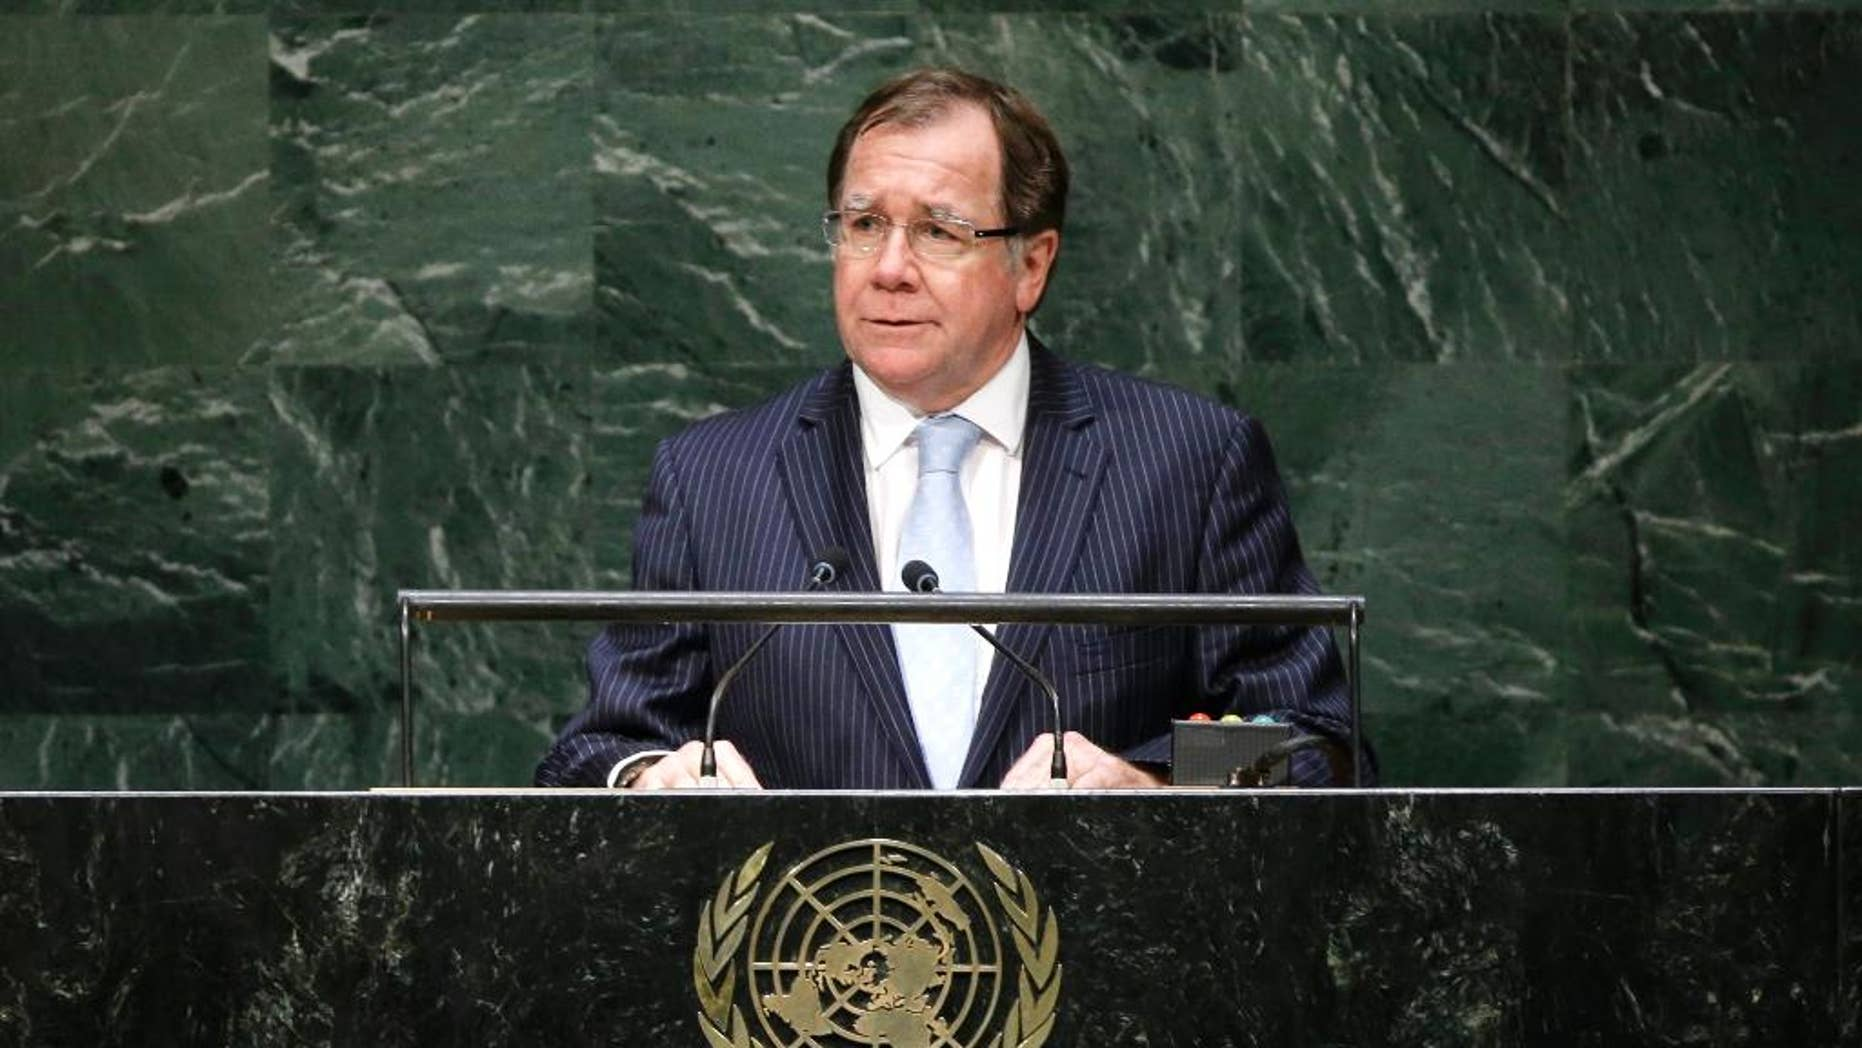 FILE - In this Sept. 29, 2014 file photo, New Zealand Foreign Minister Murray McCully addresses the 69th session of the United Nations General Assembly at U.N. headquarters. New Zealand in October was one of five nations to win elections for coveted seats on the U.N. Security Council. It will serve a two-year term as a non-veto-wielding member beginning in January. McCully spoke about what the win means in an interview on Friday, Oct. 31, 2014. (AP Photo/Frank Franklin II, File)